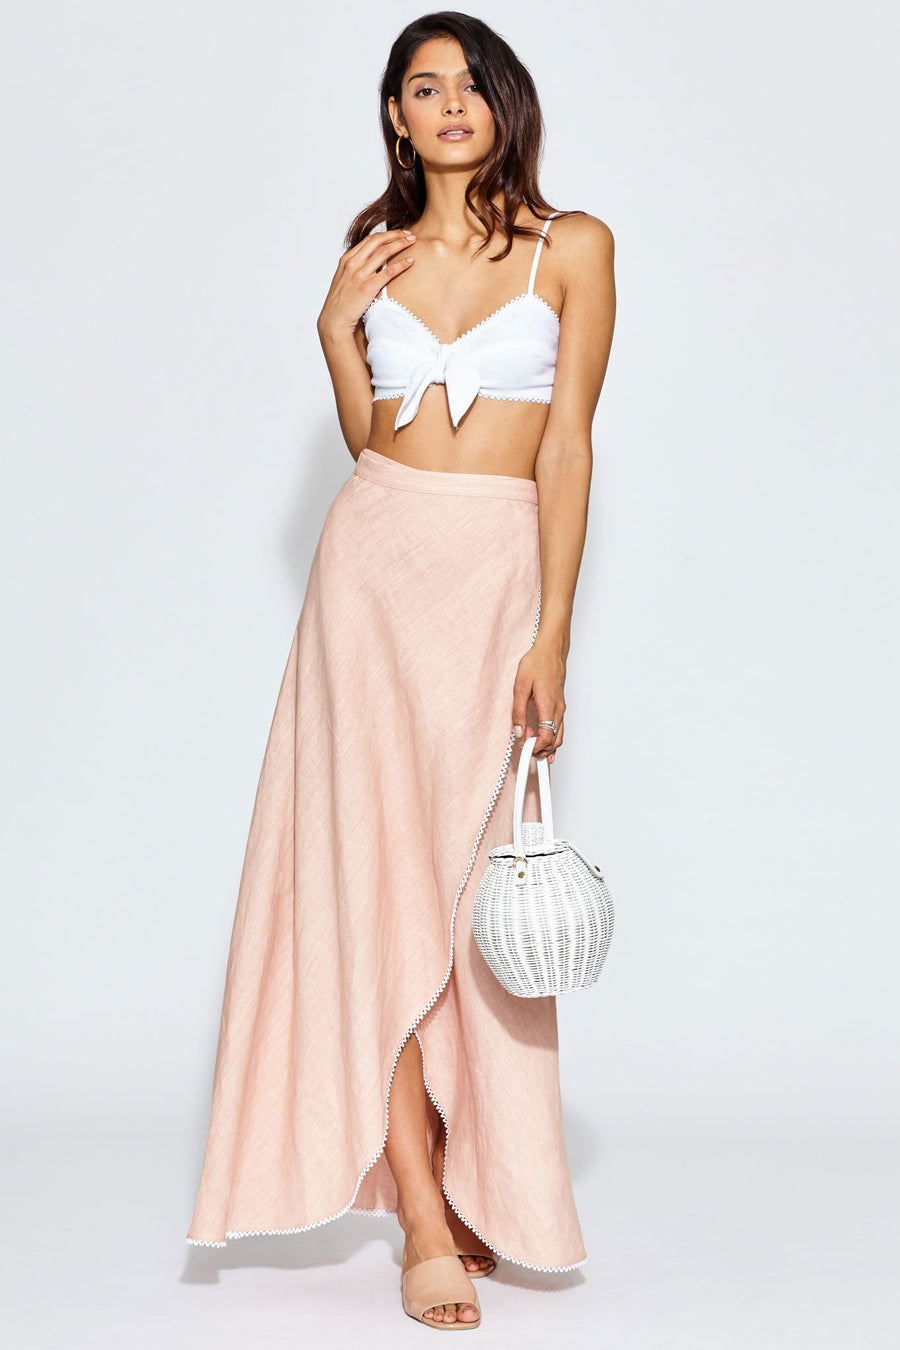 This is a photo of a woman wearing a white, crochet trimmed, linen bralette that ties in the front. She is wearing this with a pastel pink, linen wrap skirt and is holding a white basket bag.